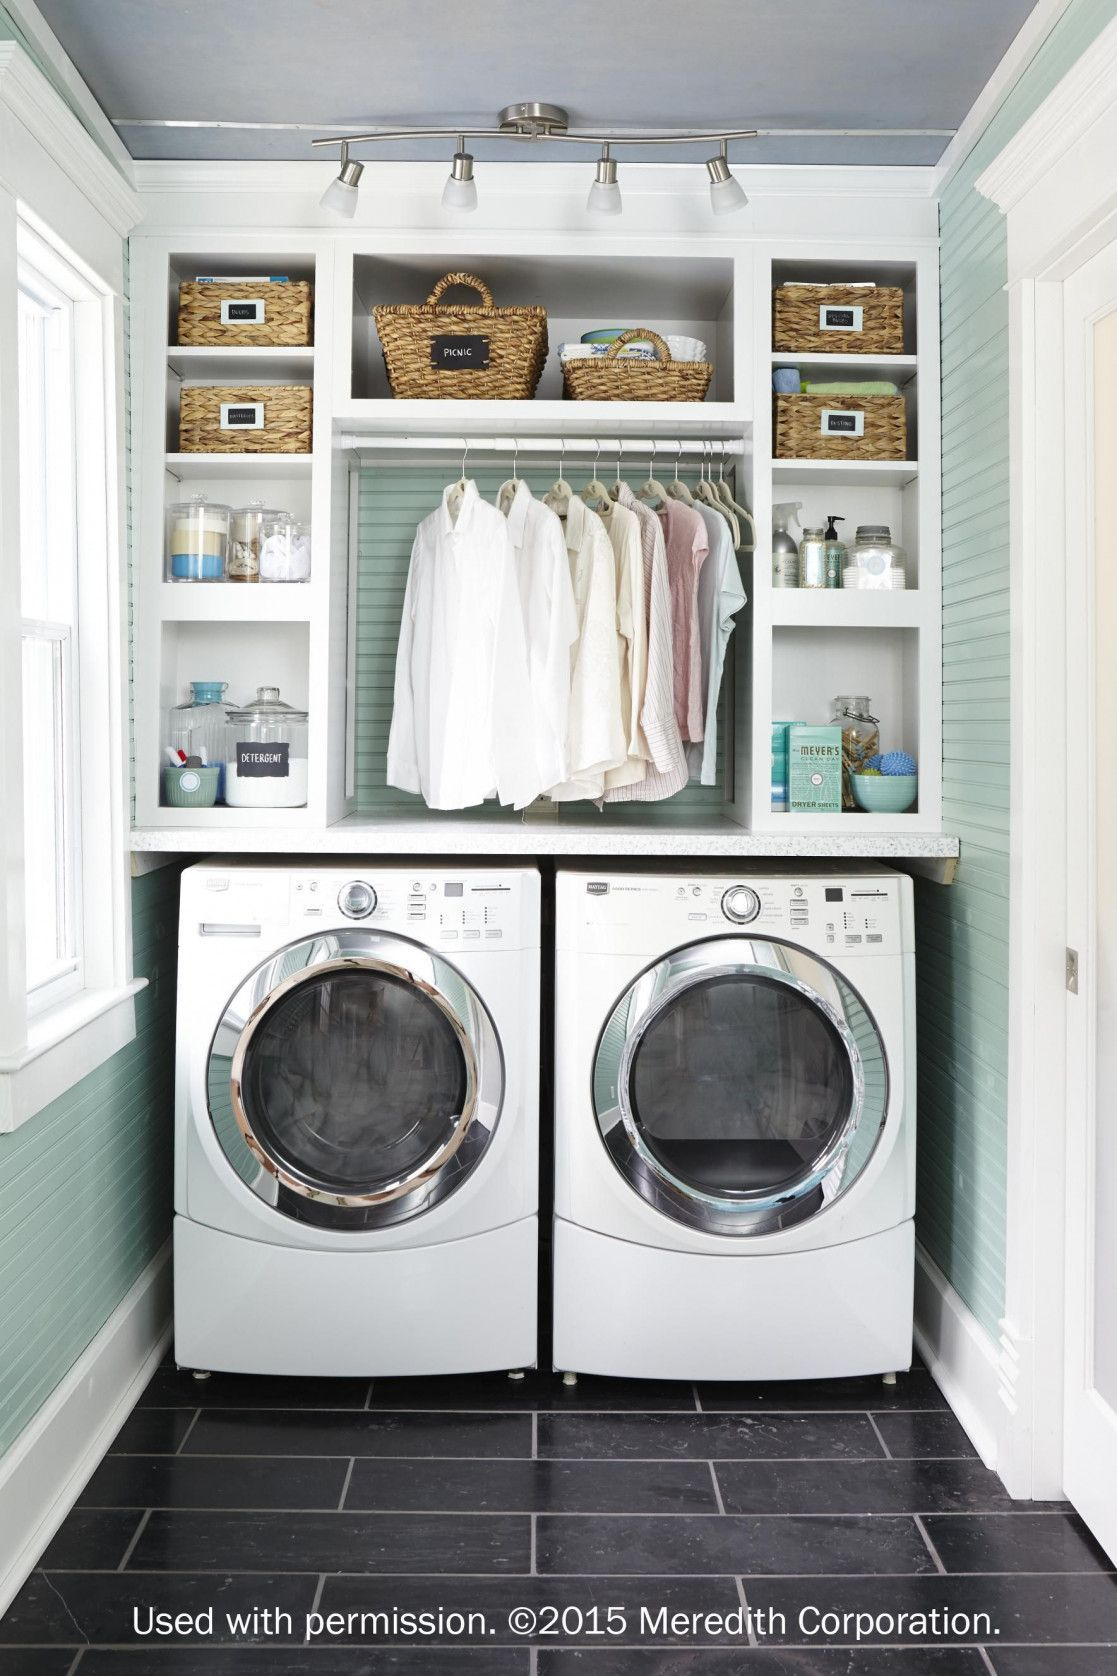 55 Utility Cabinets Laundry Room Kitchen Cabinet Lighting Ideas Check More At Http